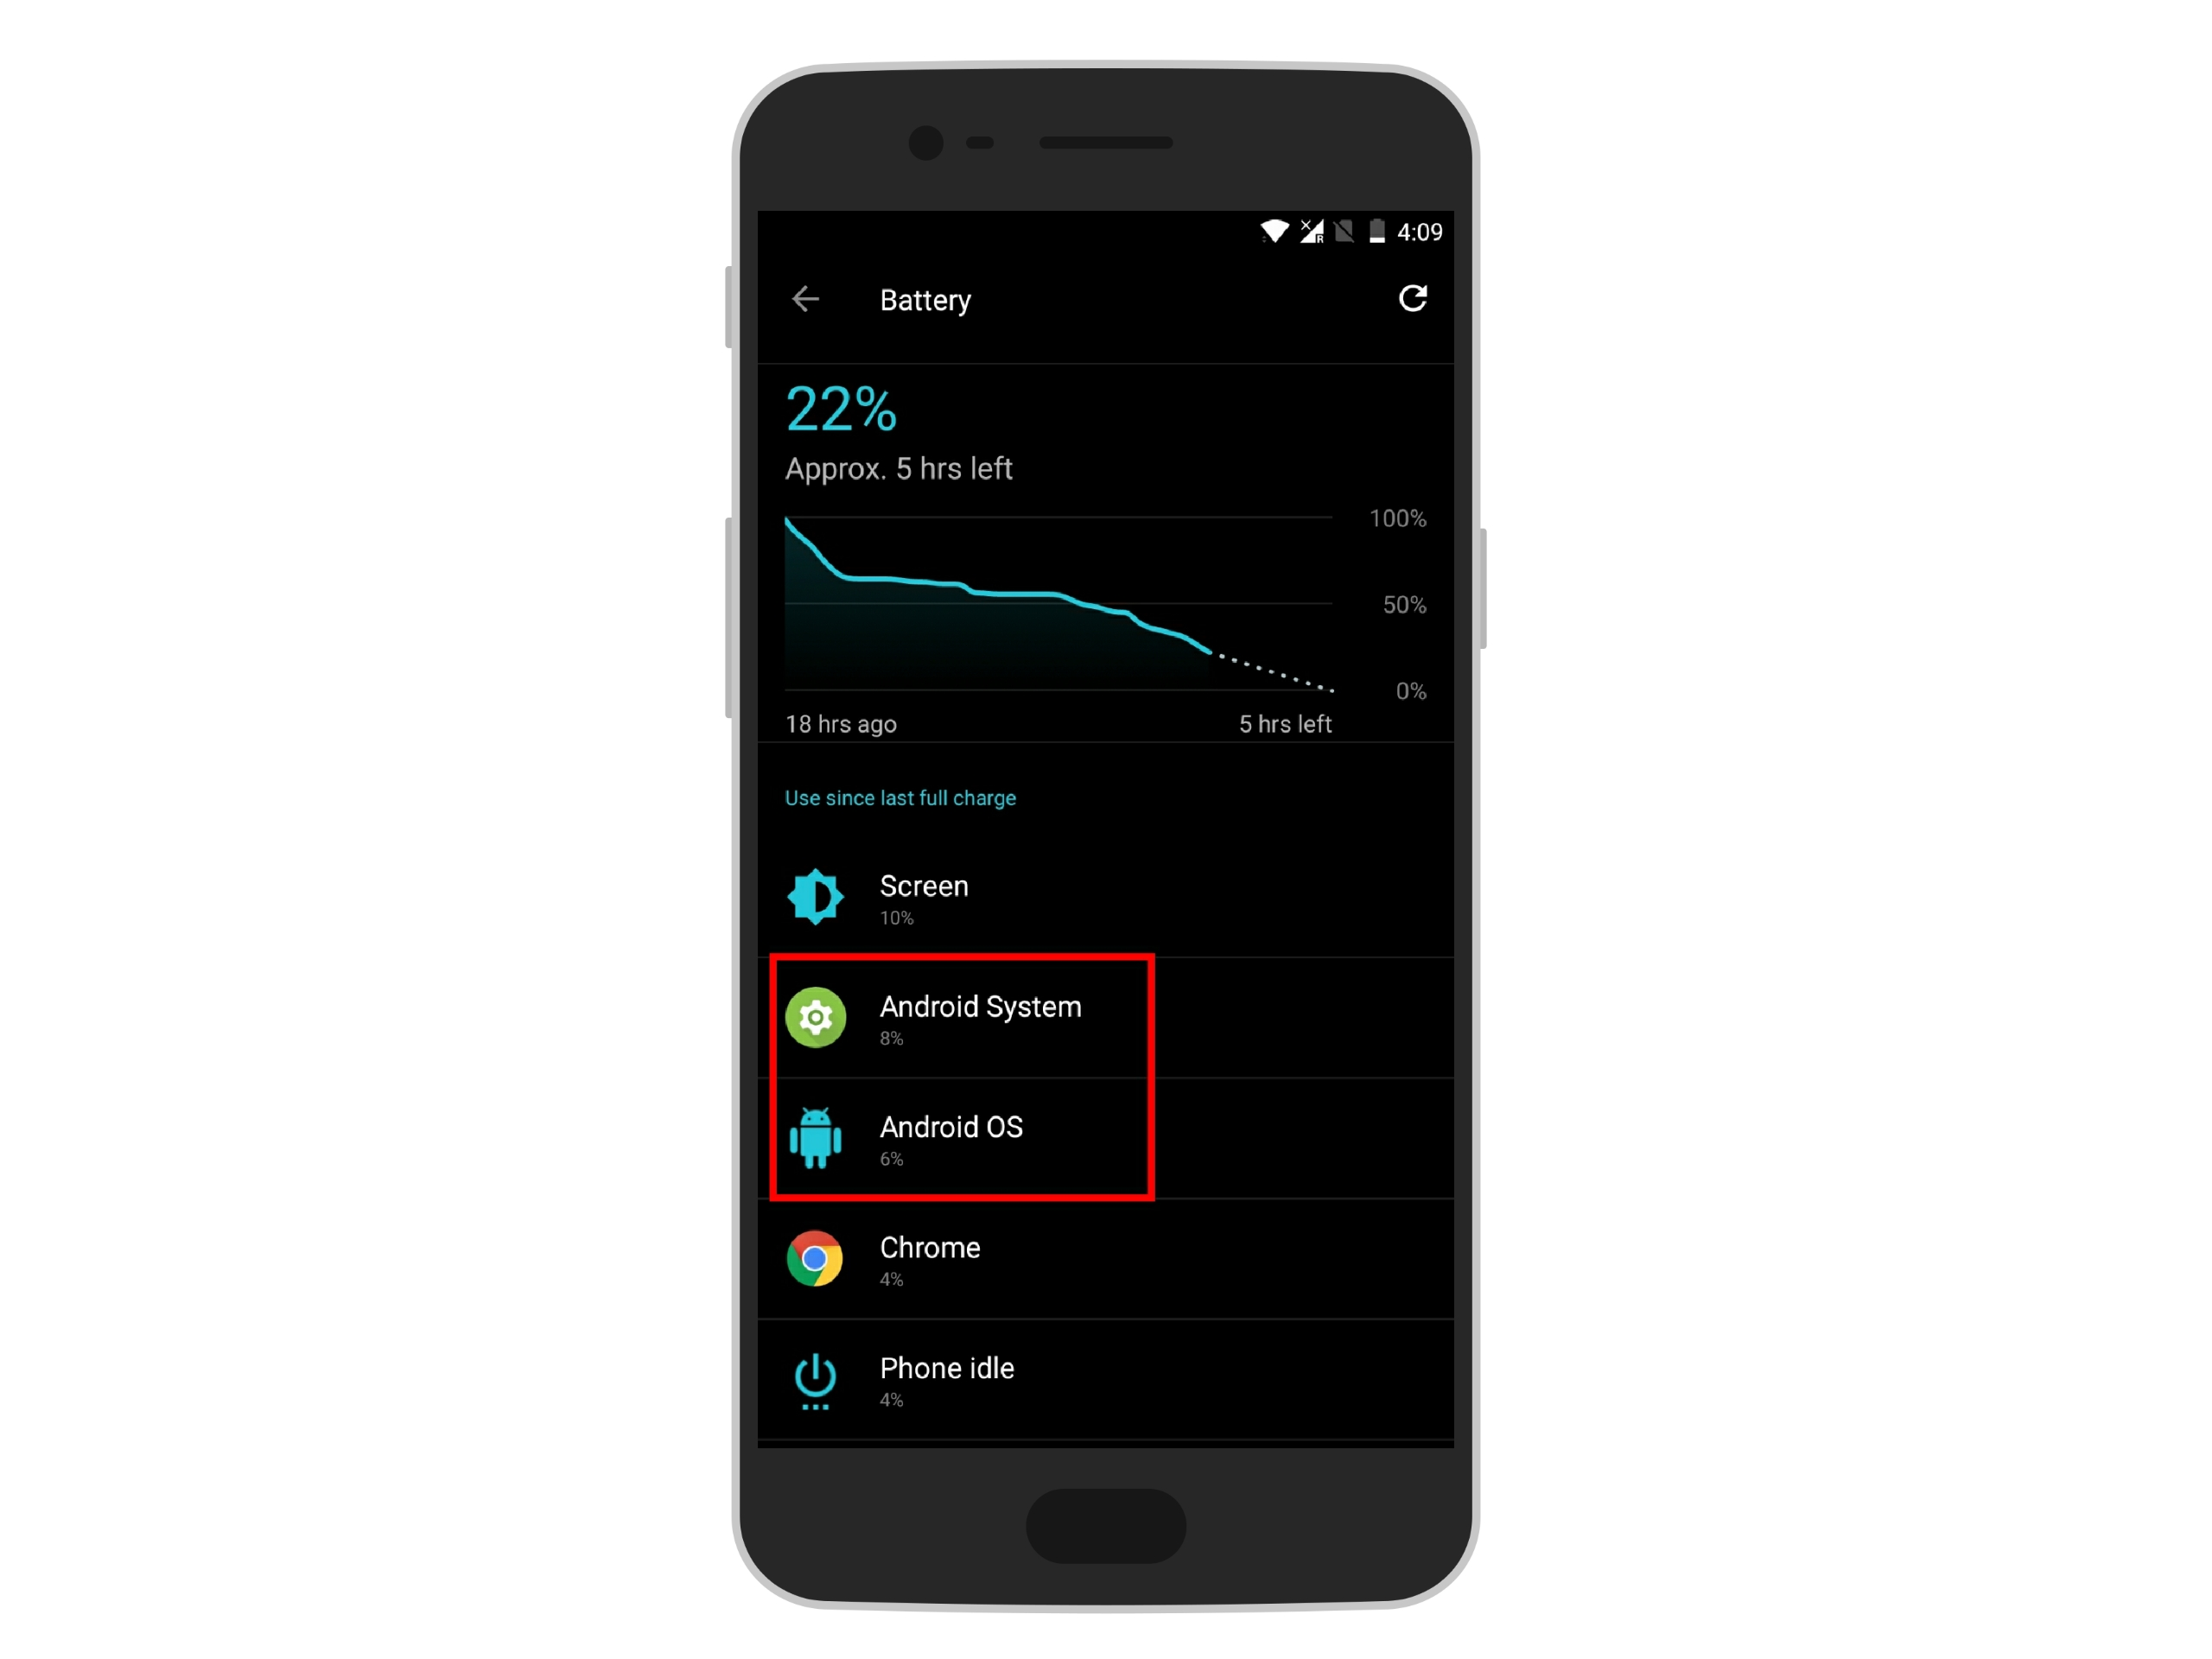 How to fix Android OS, Android System battery drain